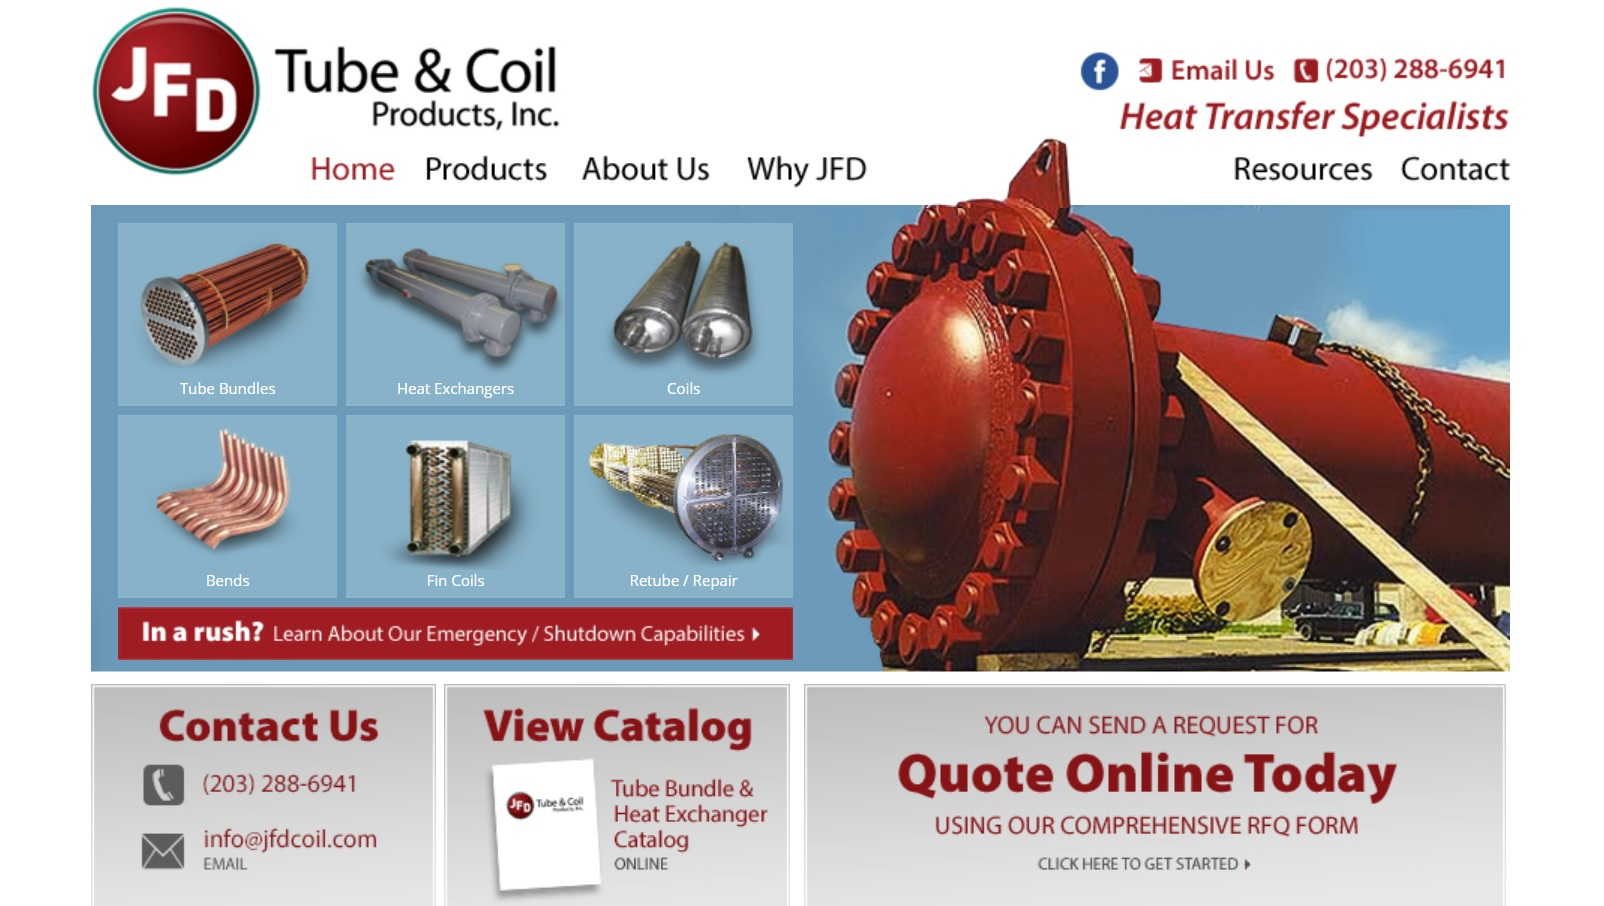 JFD Tube & Coil Products